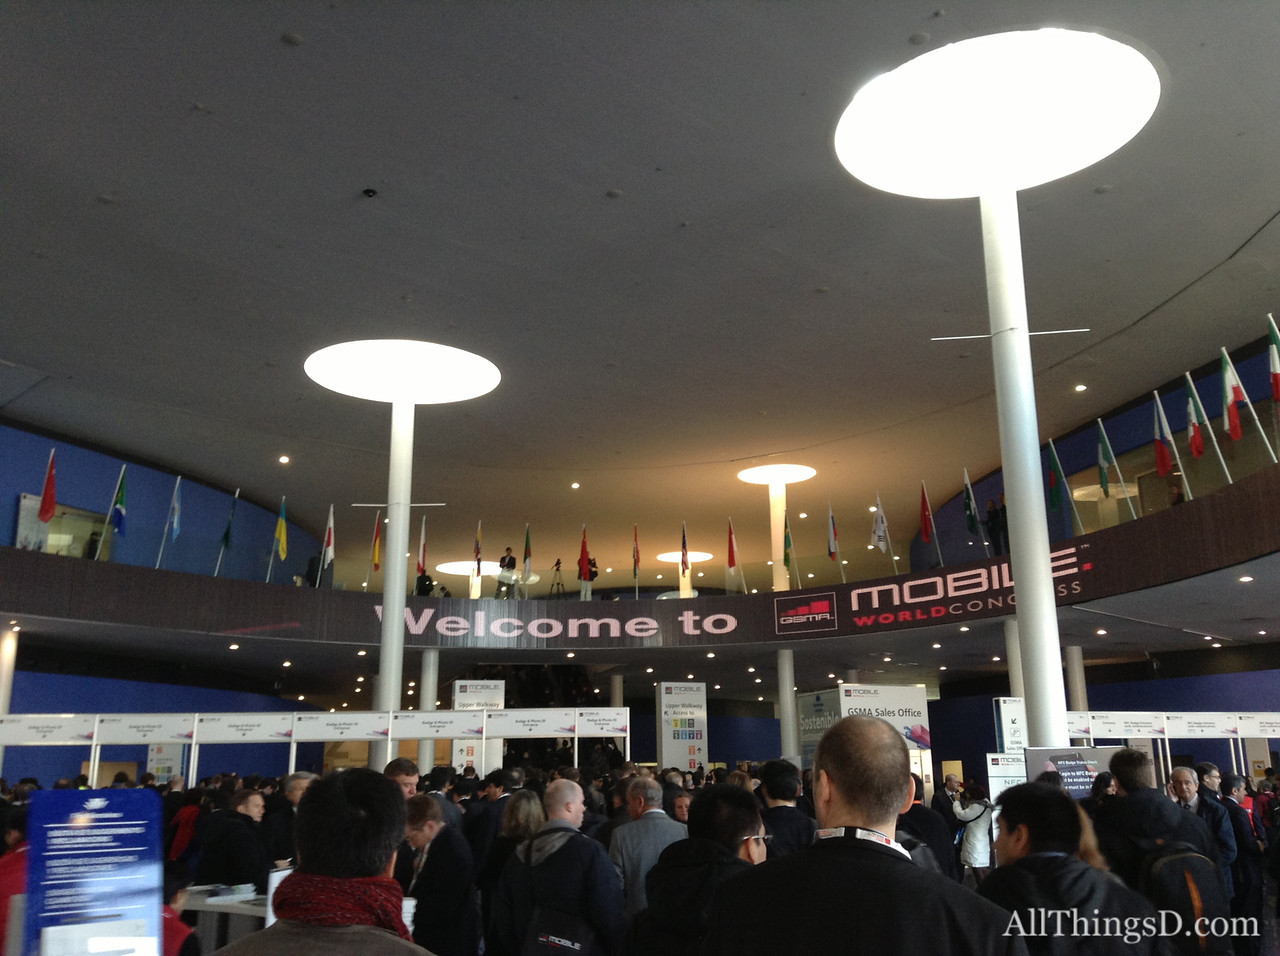 A long line to get into Mobile World Congress 2013.